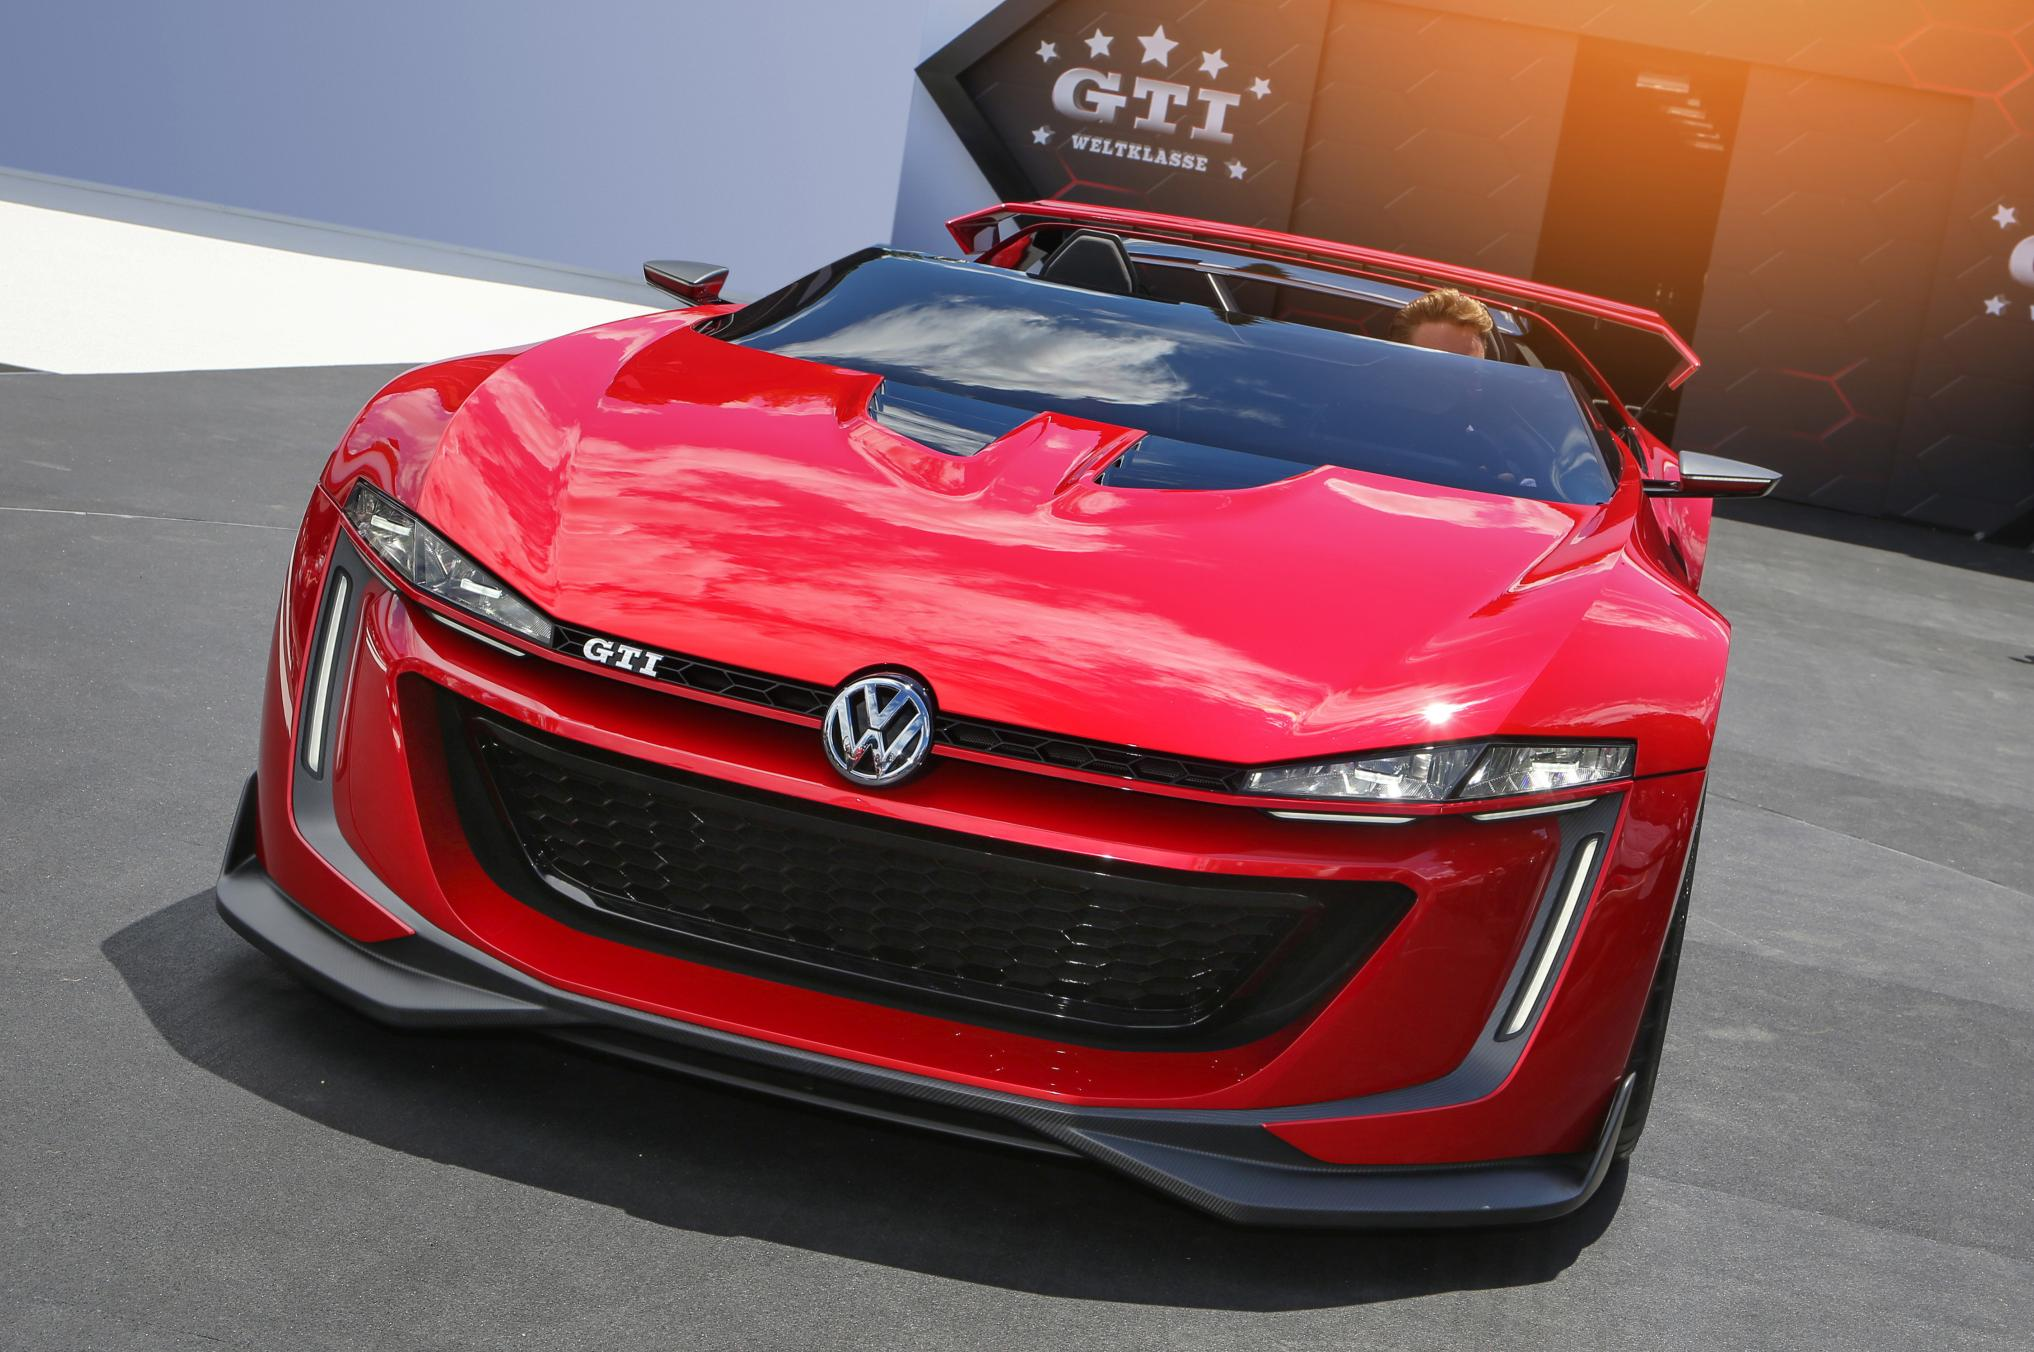 Golf GTI Roadster and Golf R400 Concepts Making US Debut ...